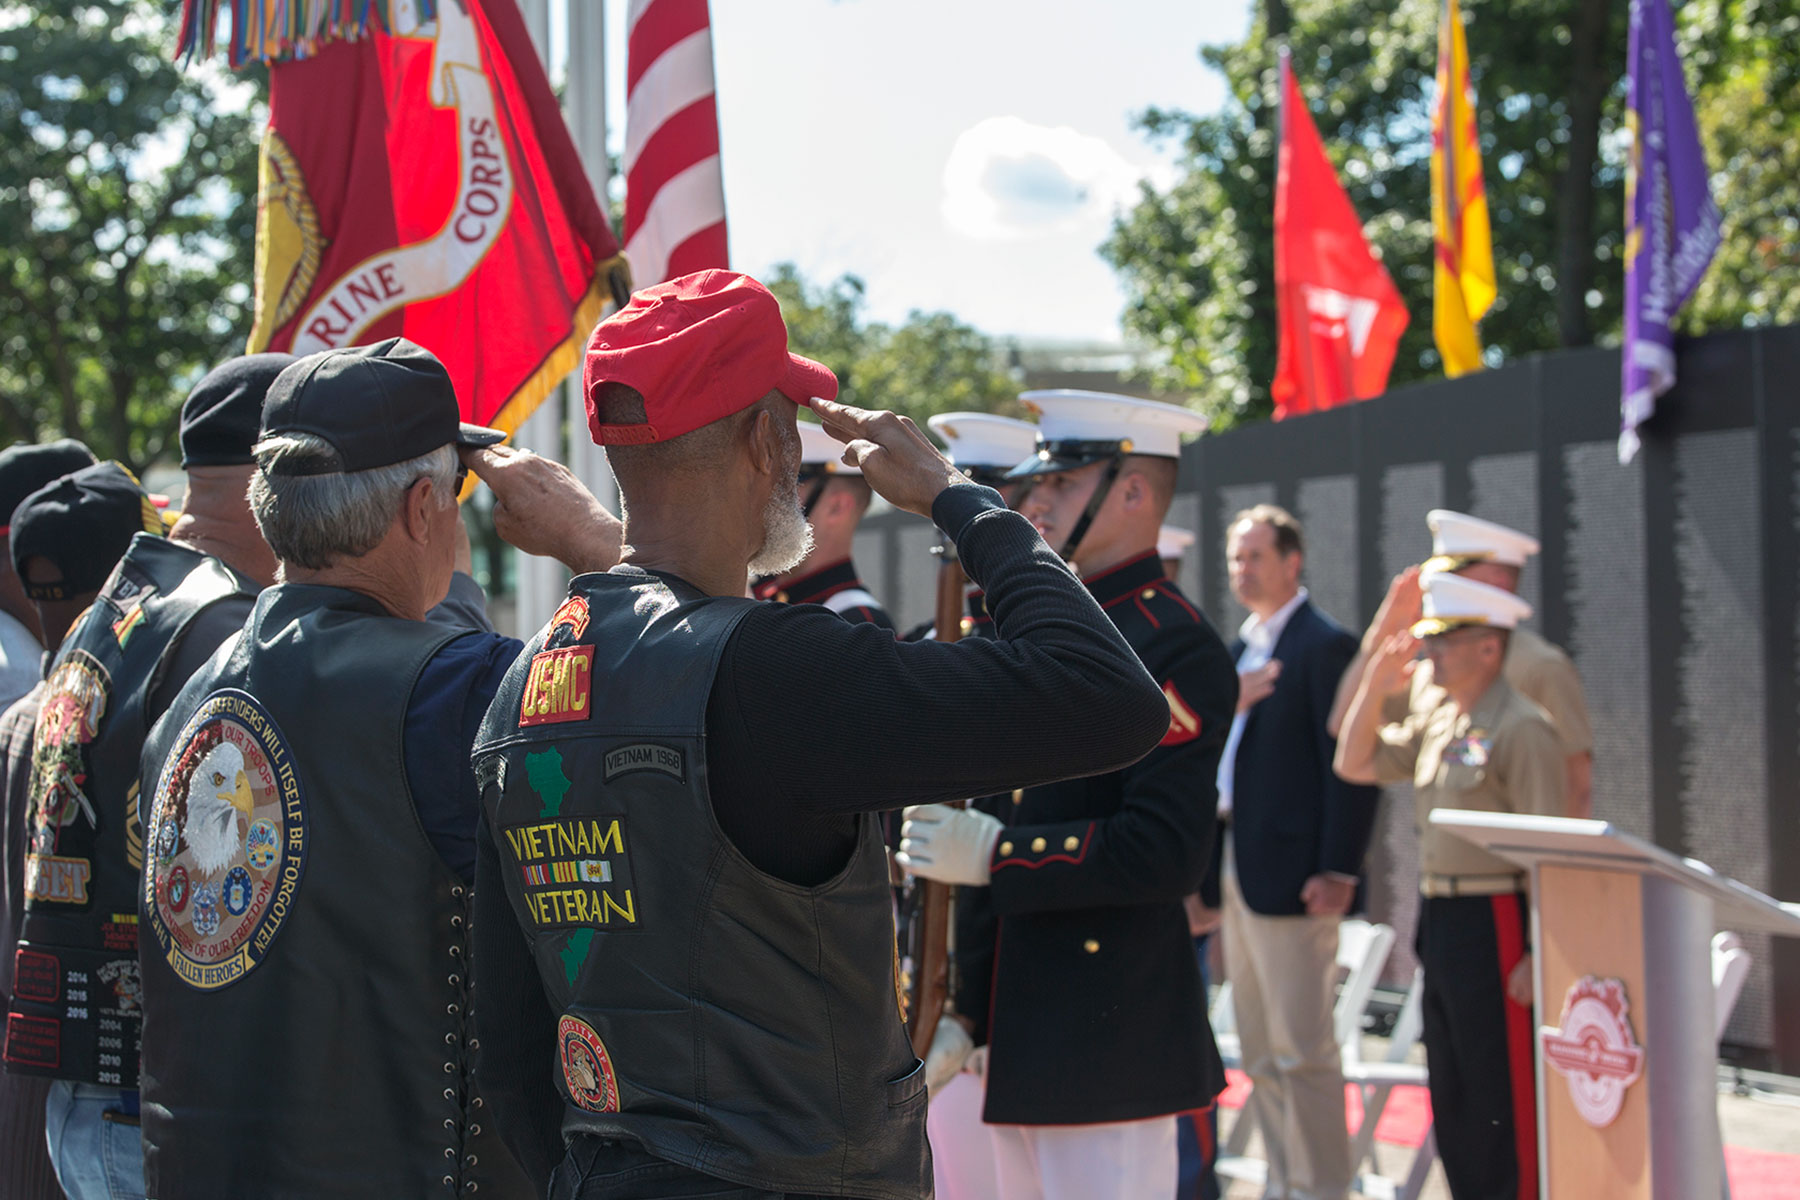 The U.S. Marine Corps Color Guard presents the National Ensign and the U.S. Marine Corps Battle Colors during a Vietnam War pinning ceremony as a part of Marine Week, Detroit, Michigan. (Marine Corps/Robert Knapp)